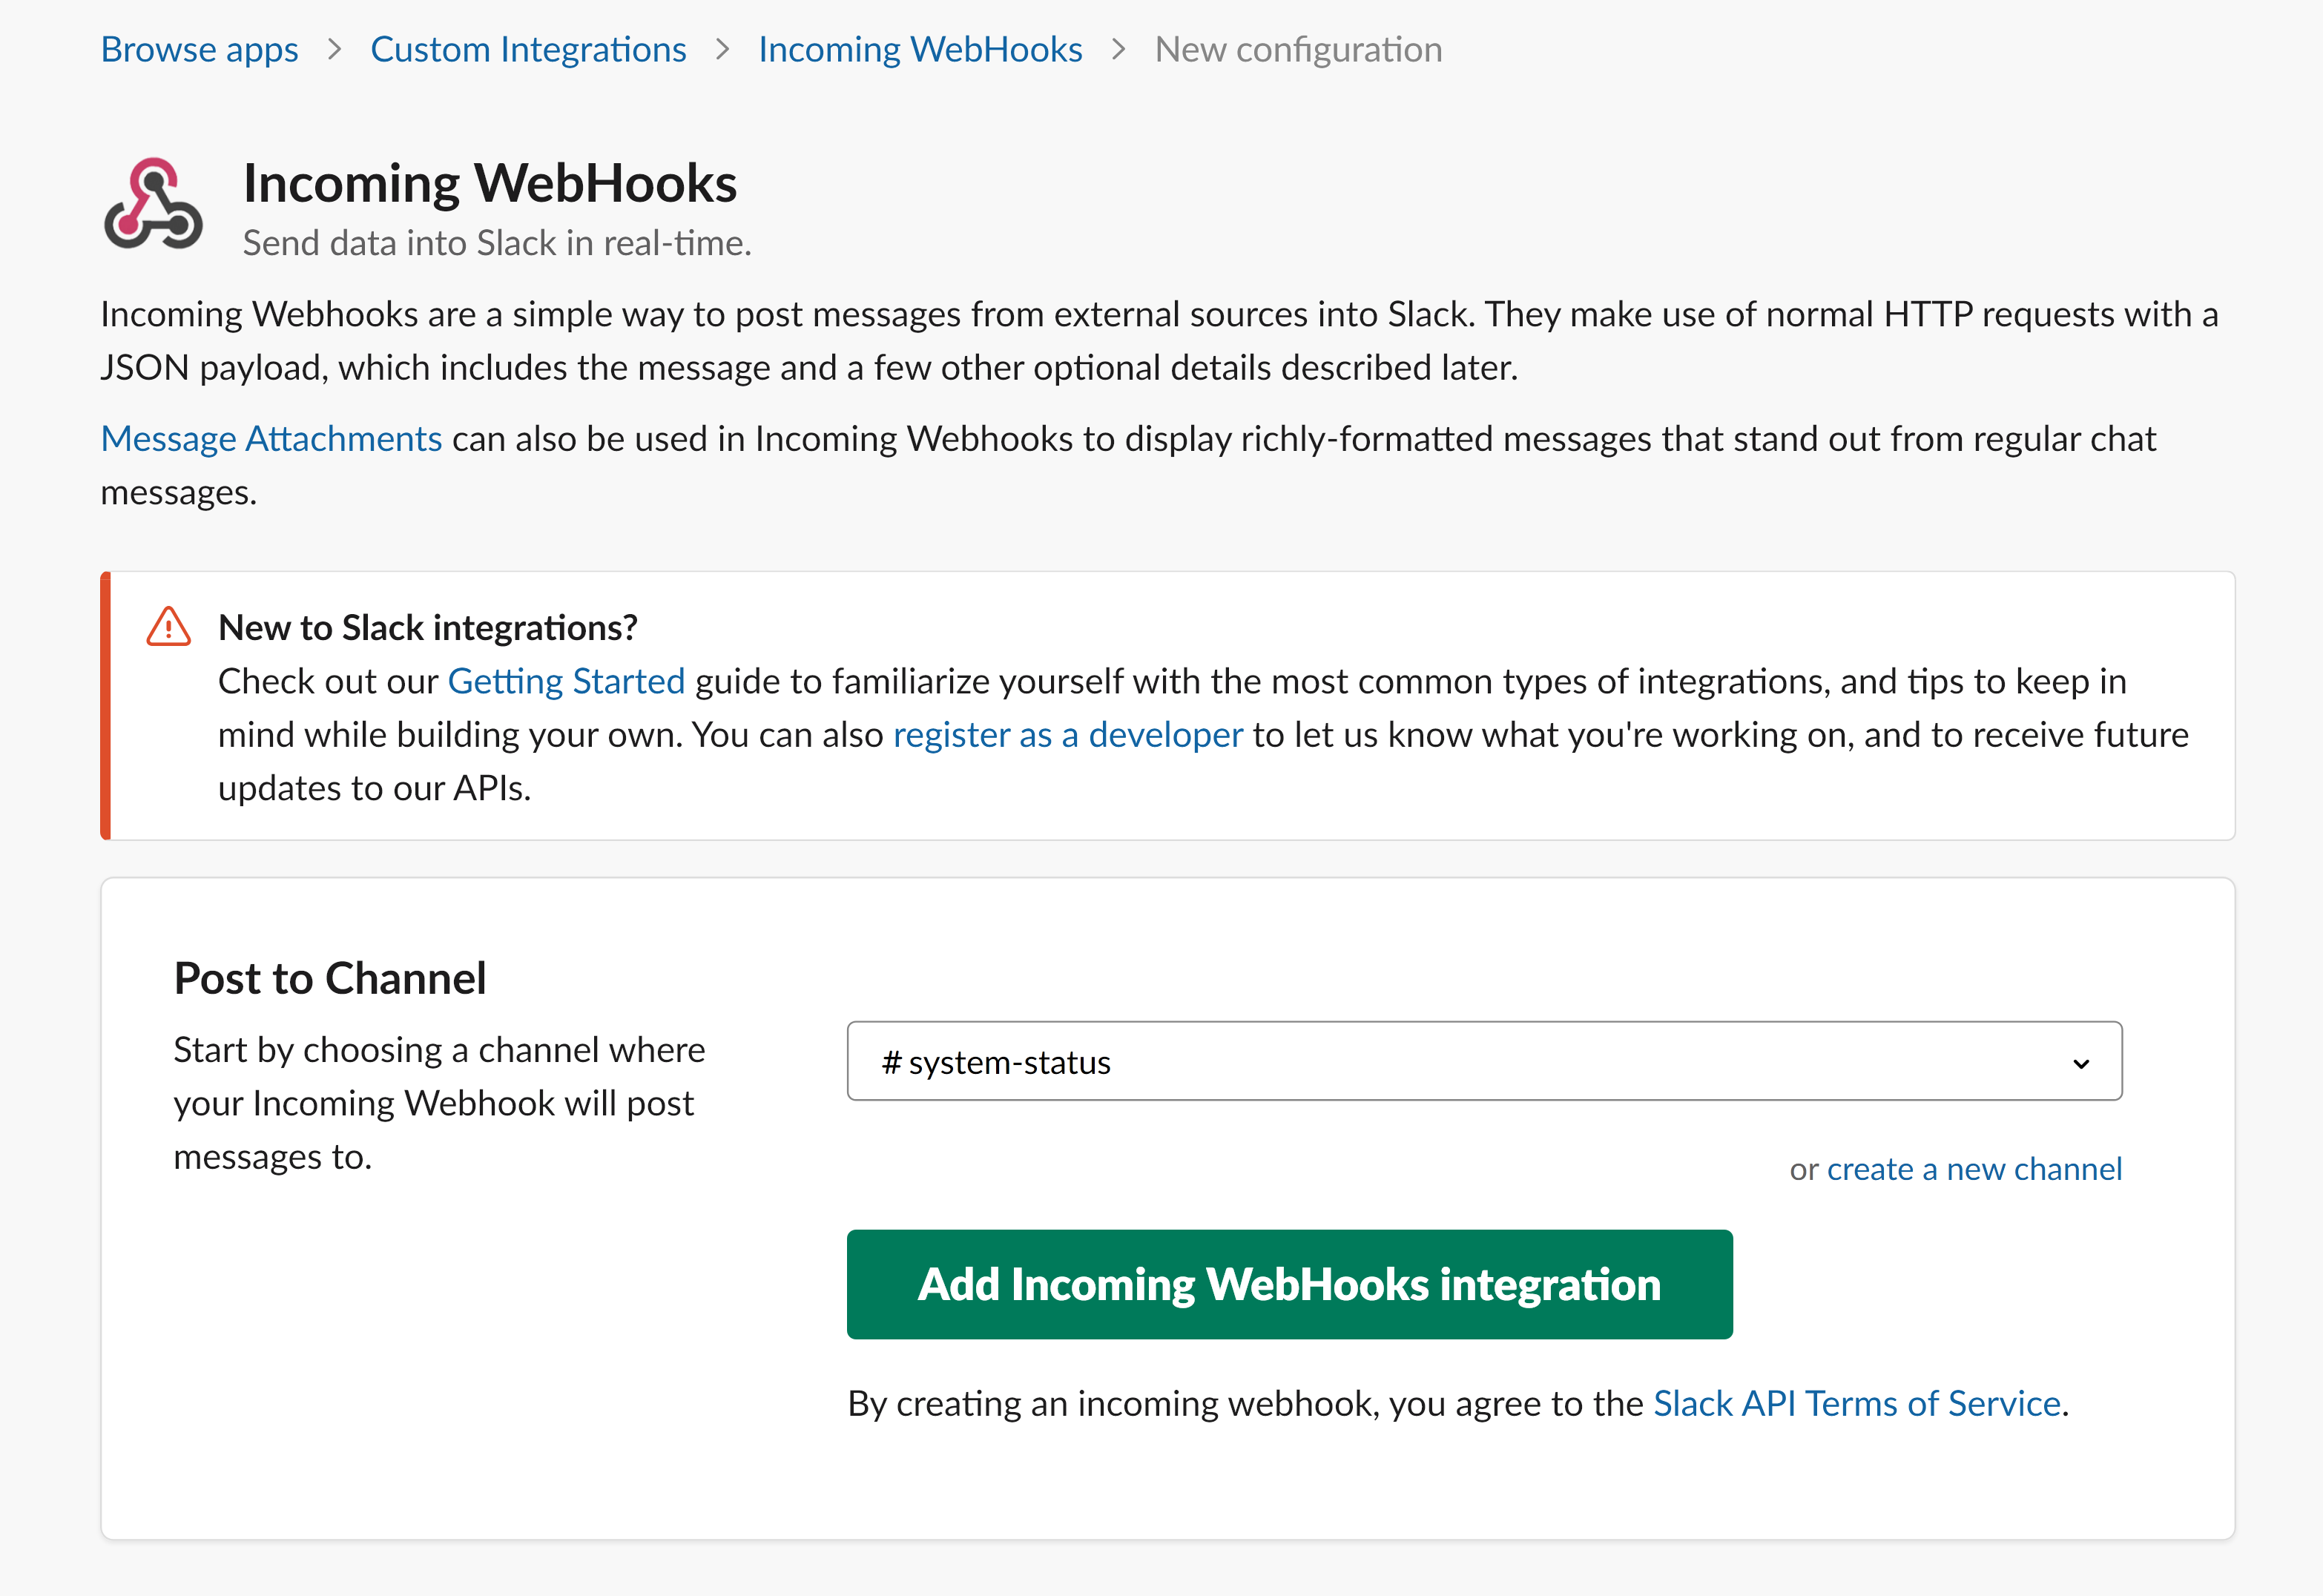 Configure Incoming WebHooks